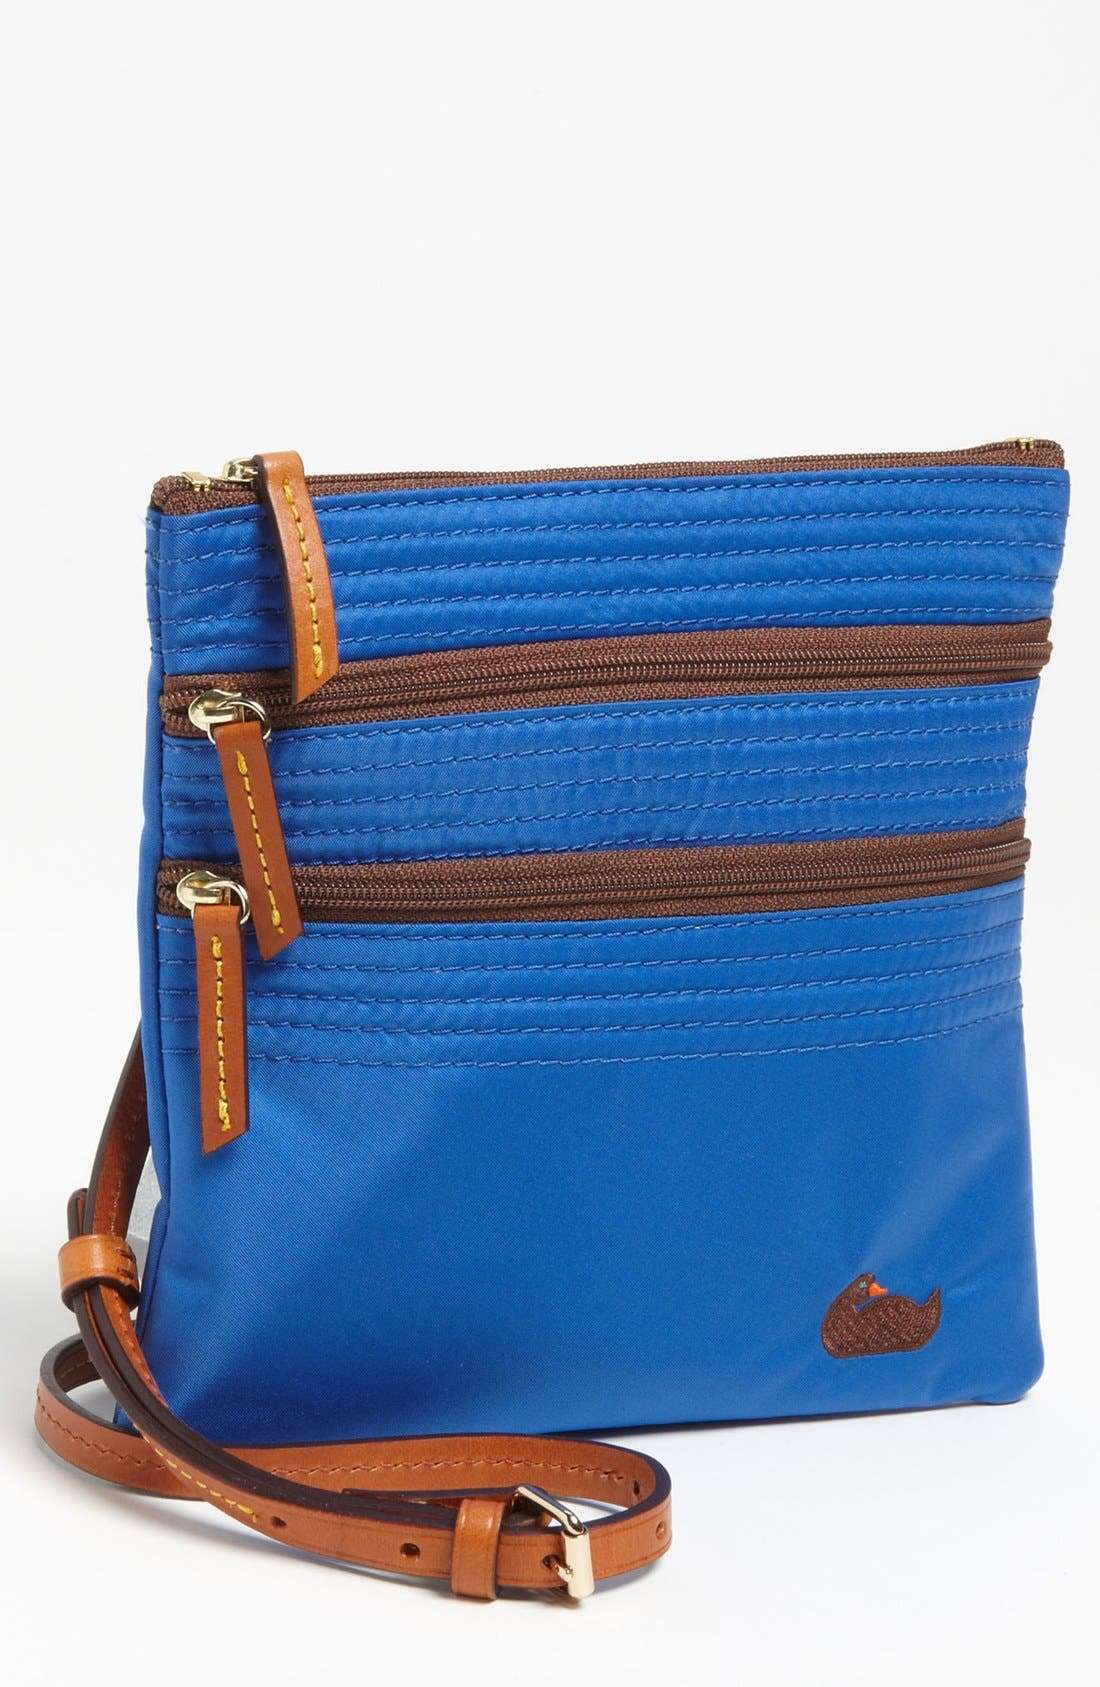 Main Image - Dooney & Bourke 'Triple Zip' Nylon Crossbody Bag